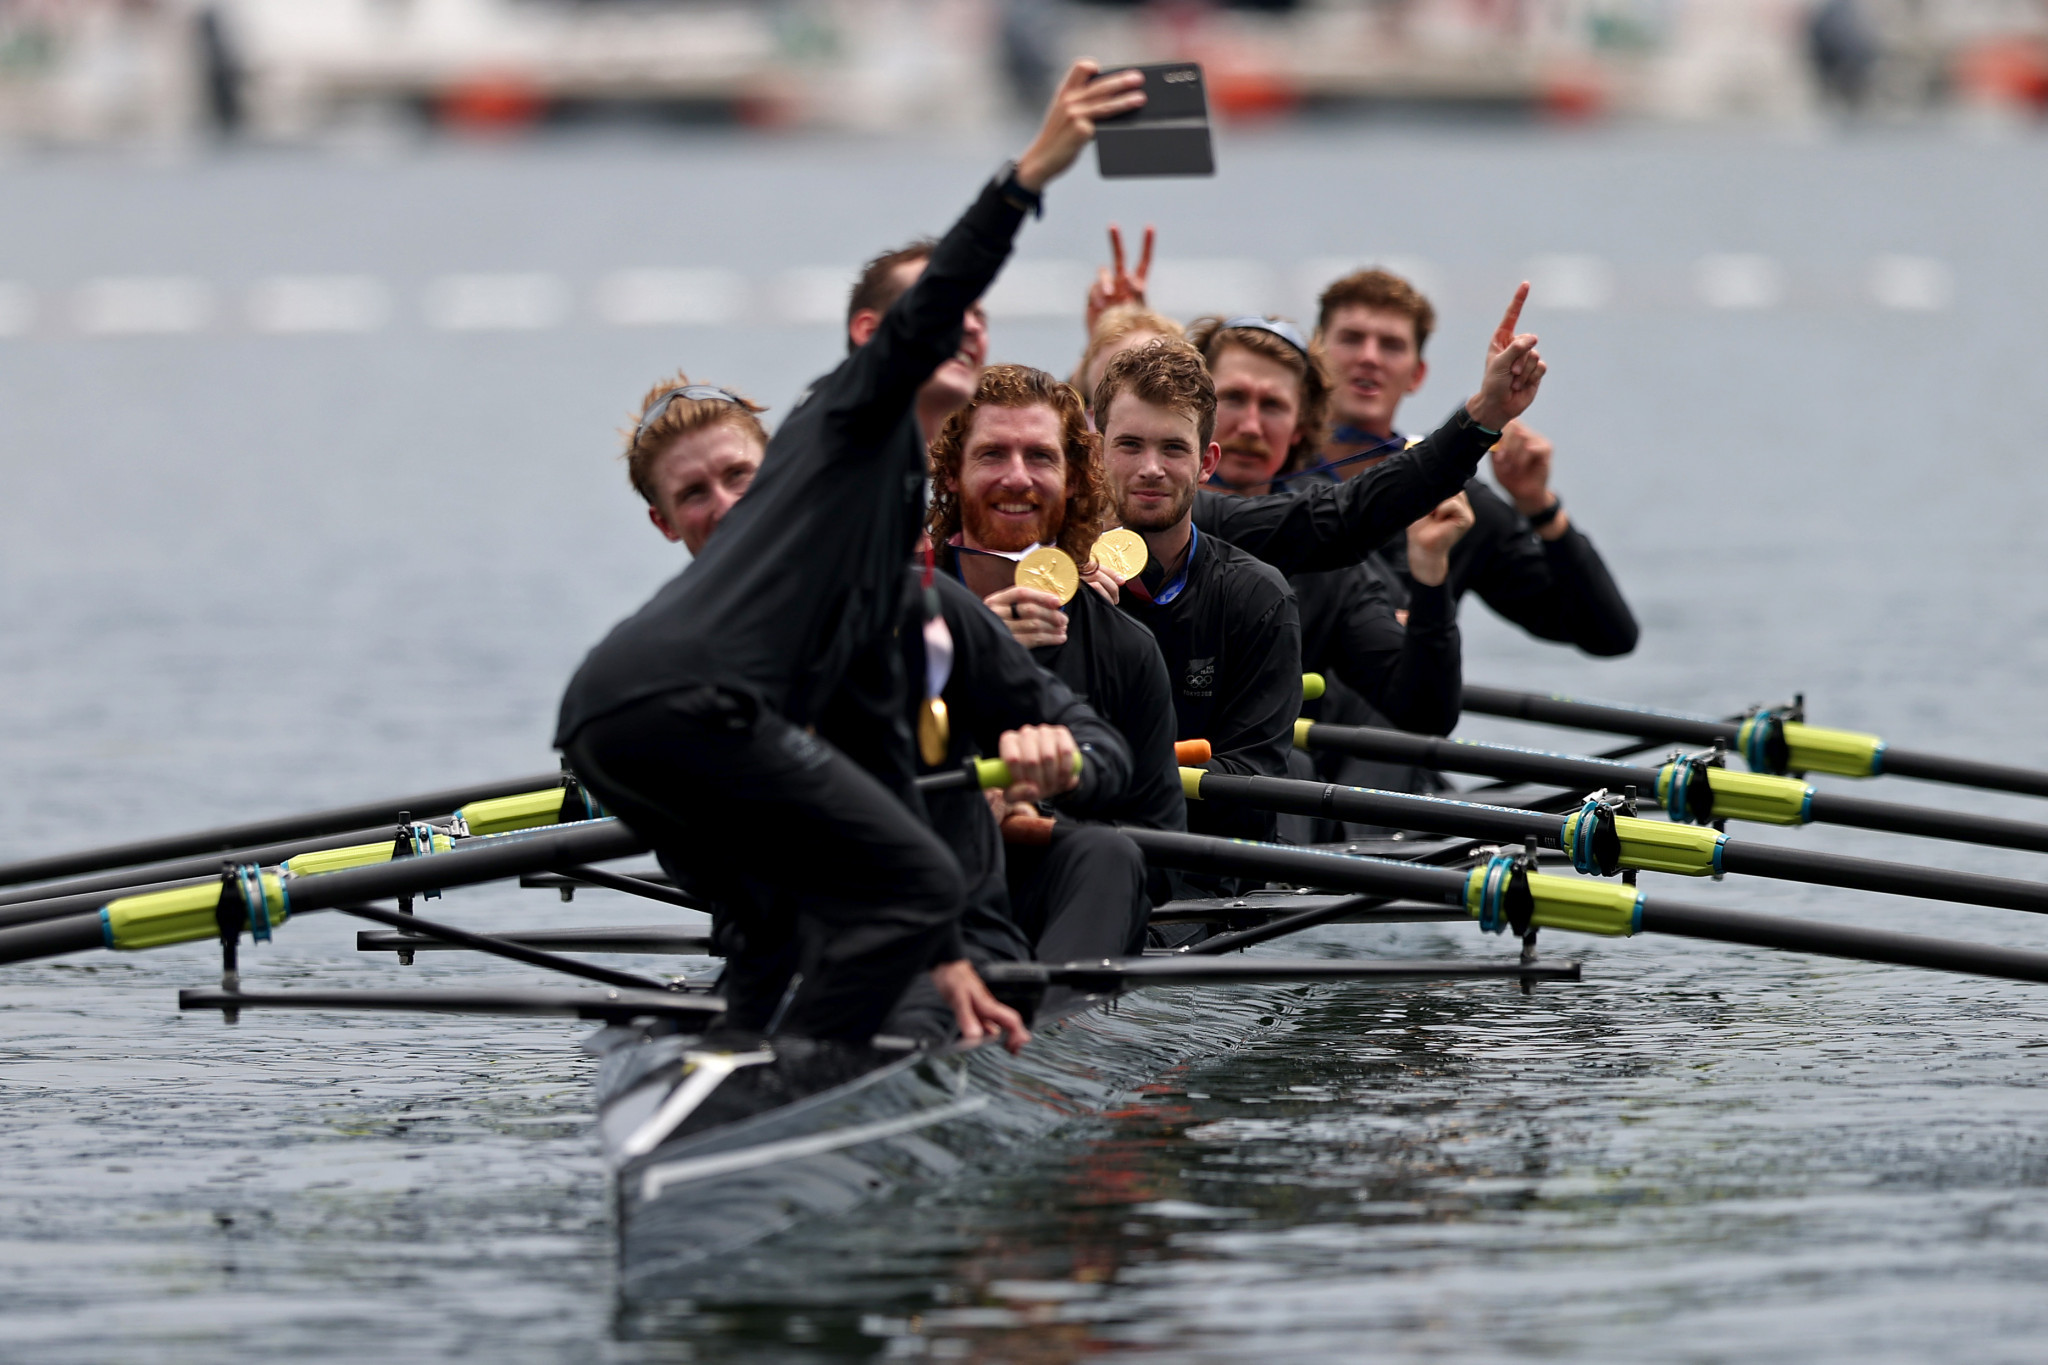 New Zealand's men's eight capture their gold medal winning celebrations on camera at the rowing ©Getty Images